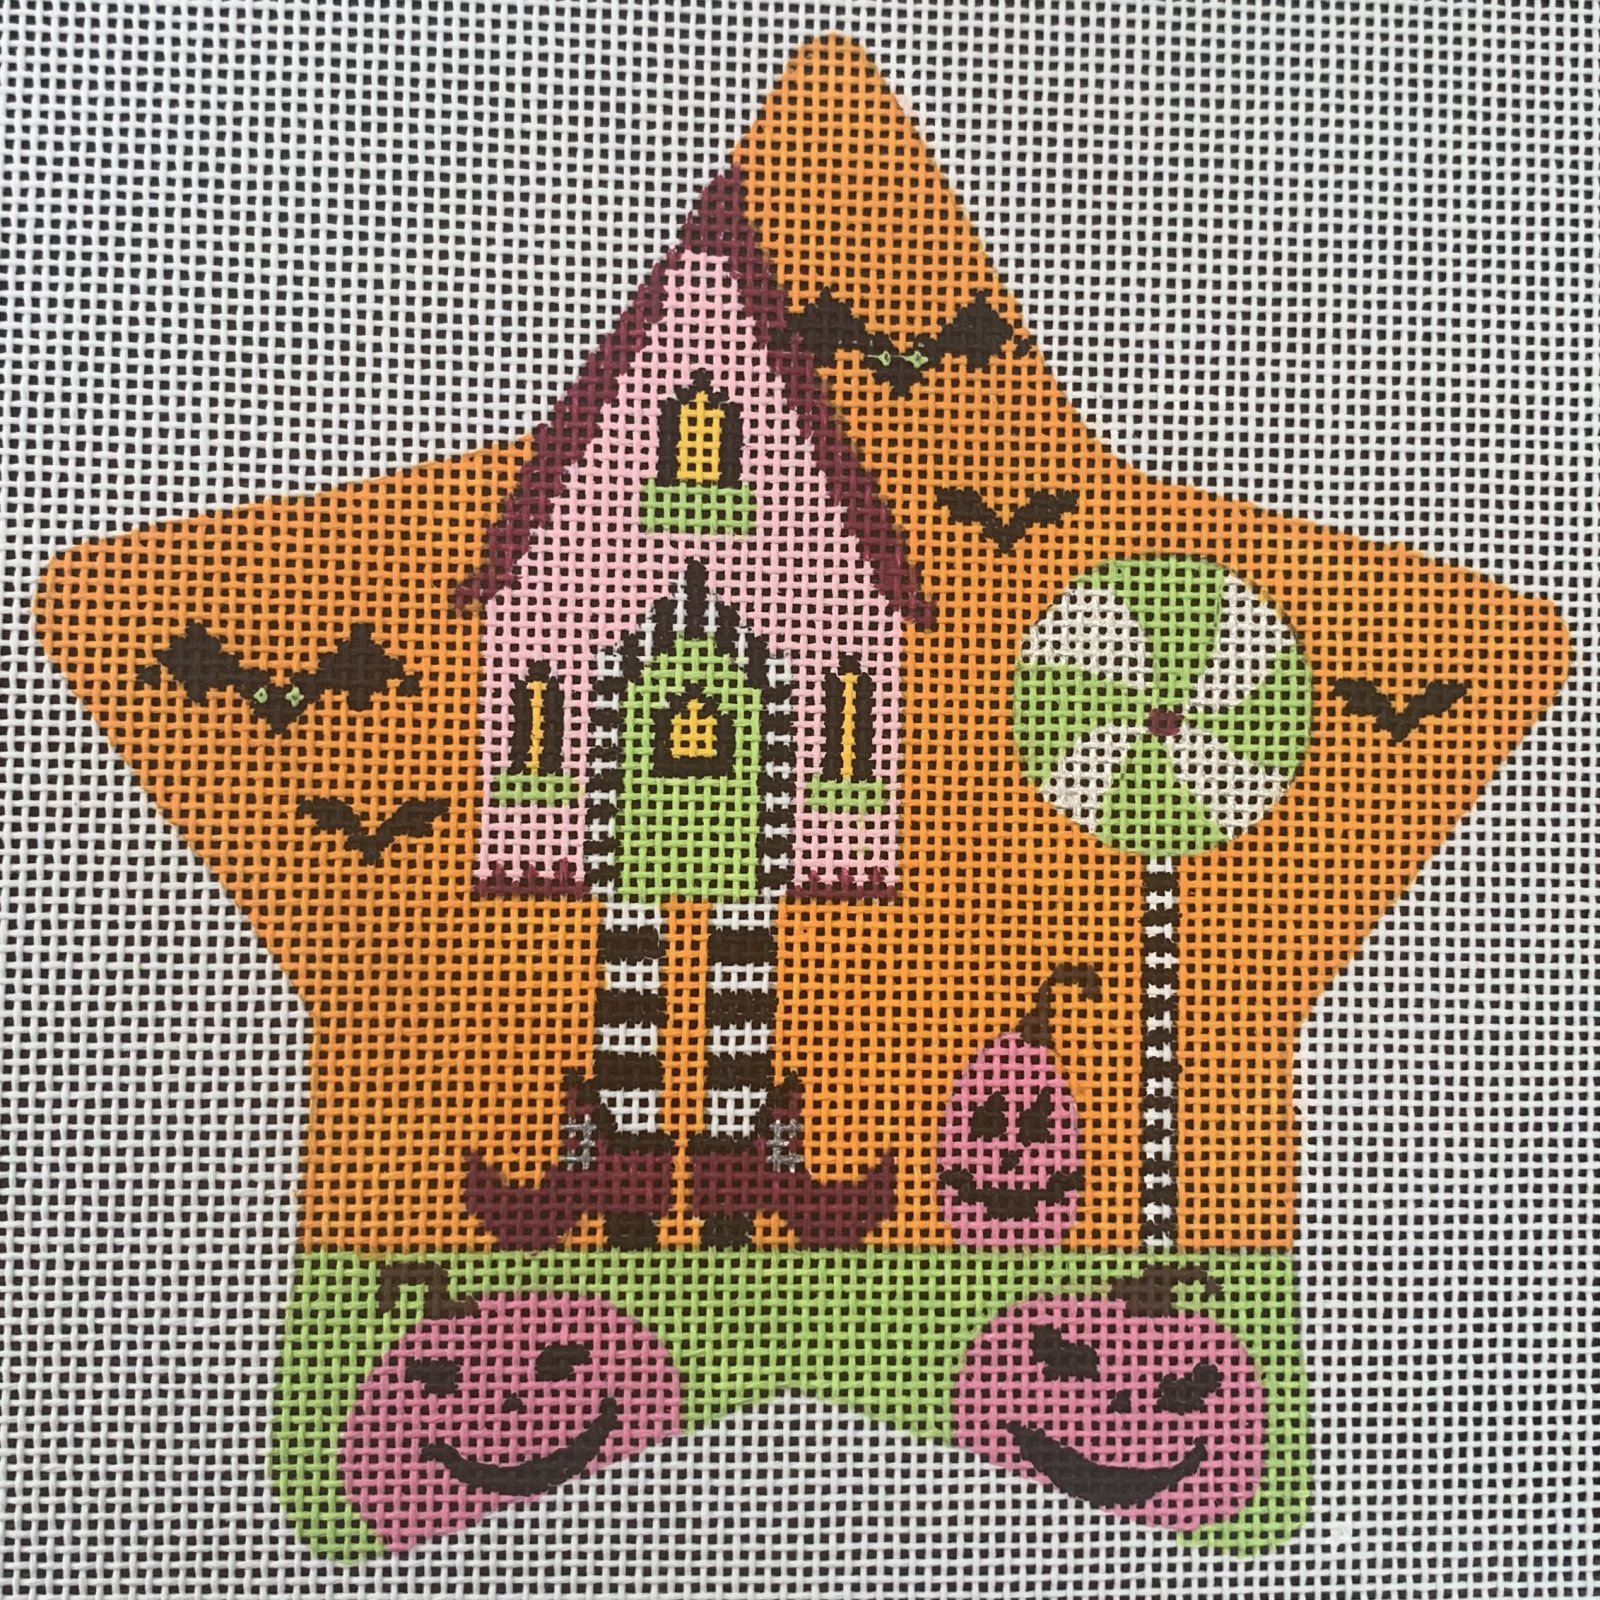 Spooky Star - Witch House with Stitch Guide